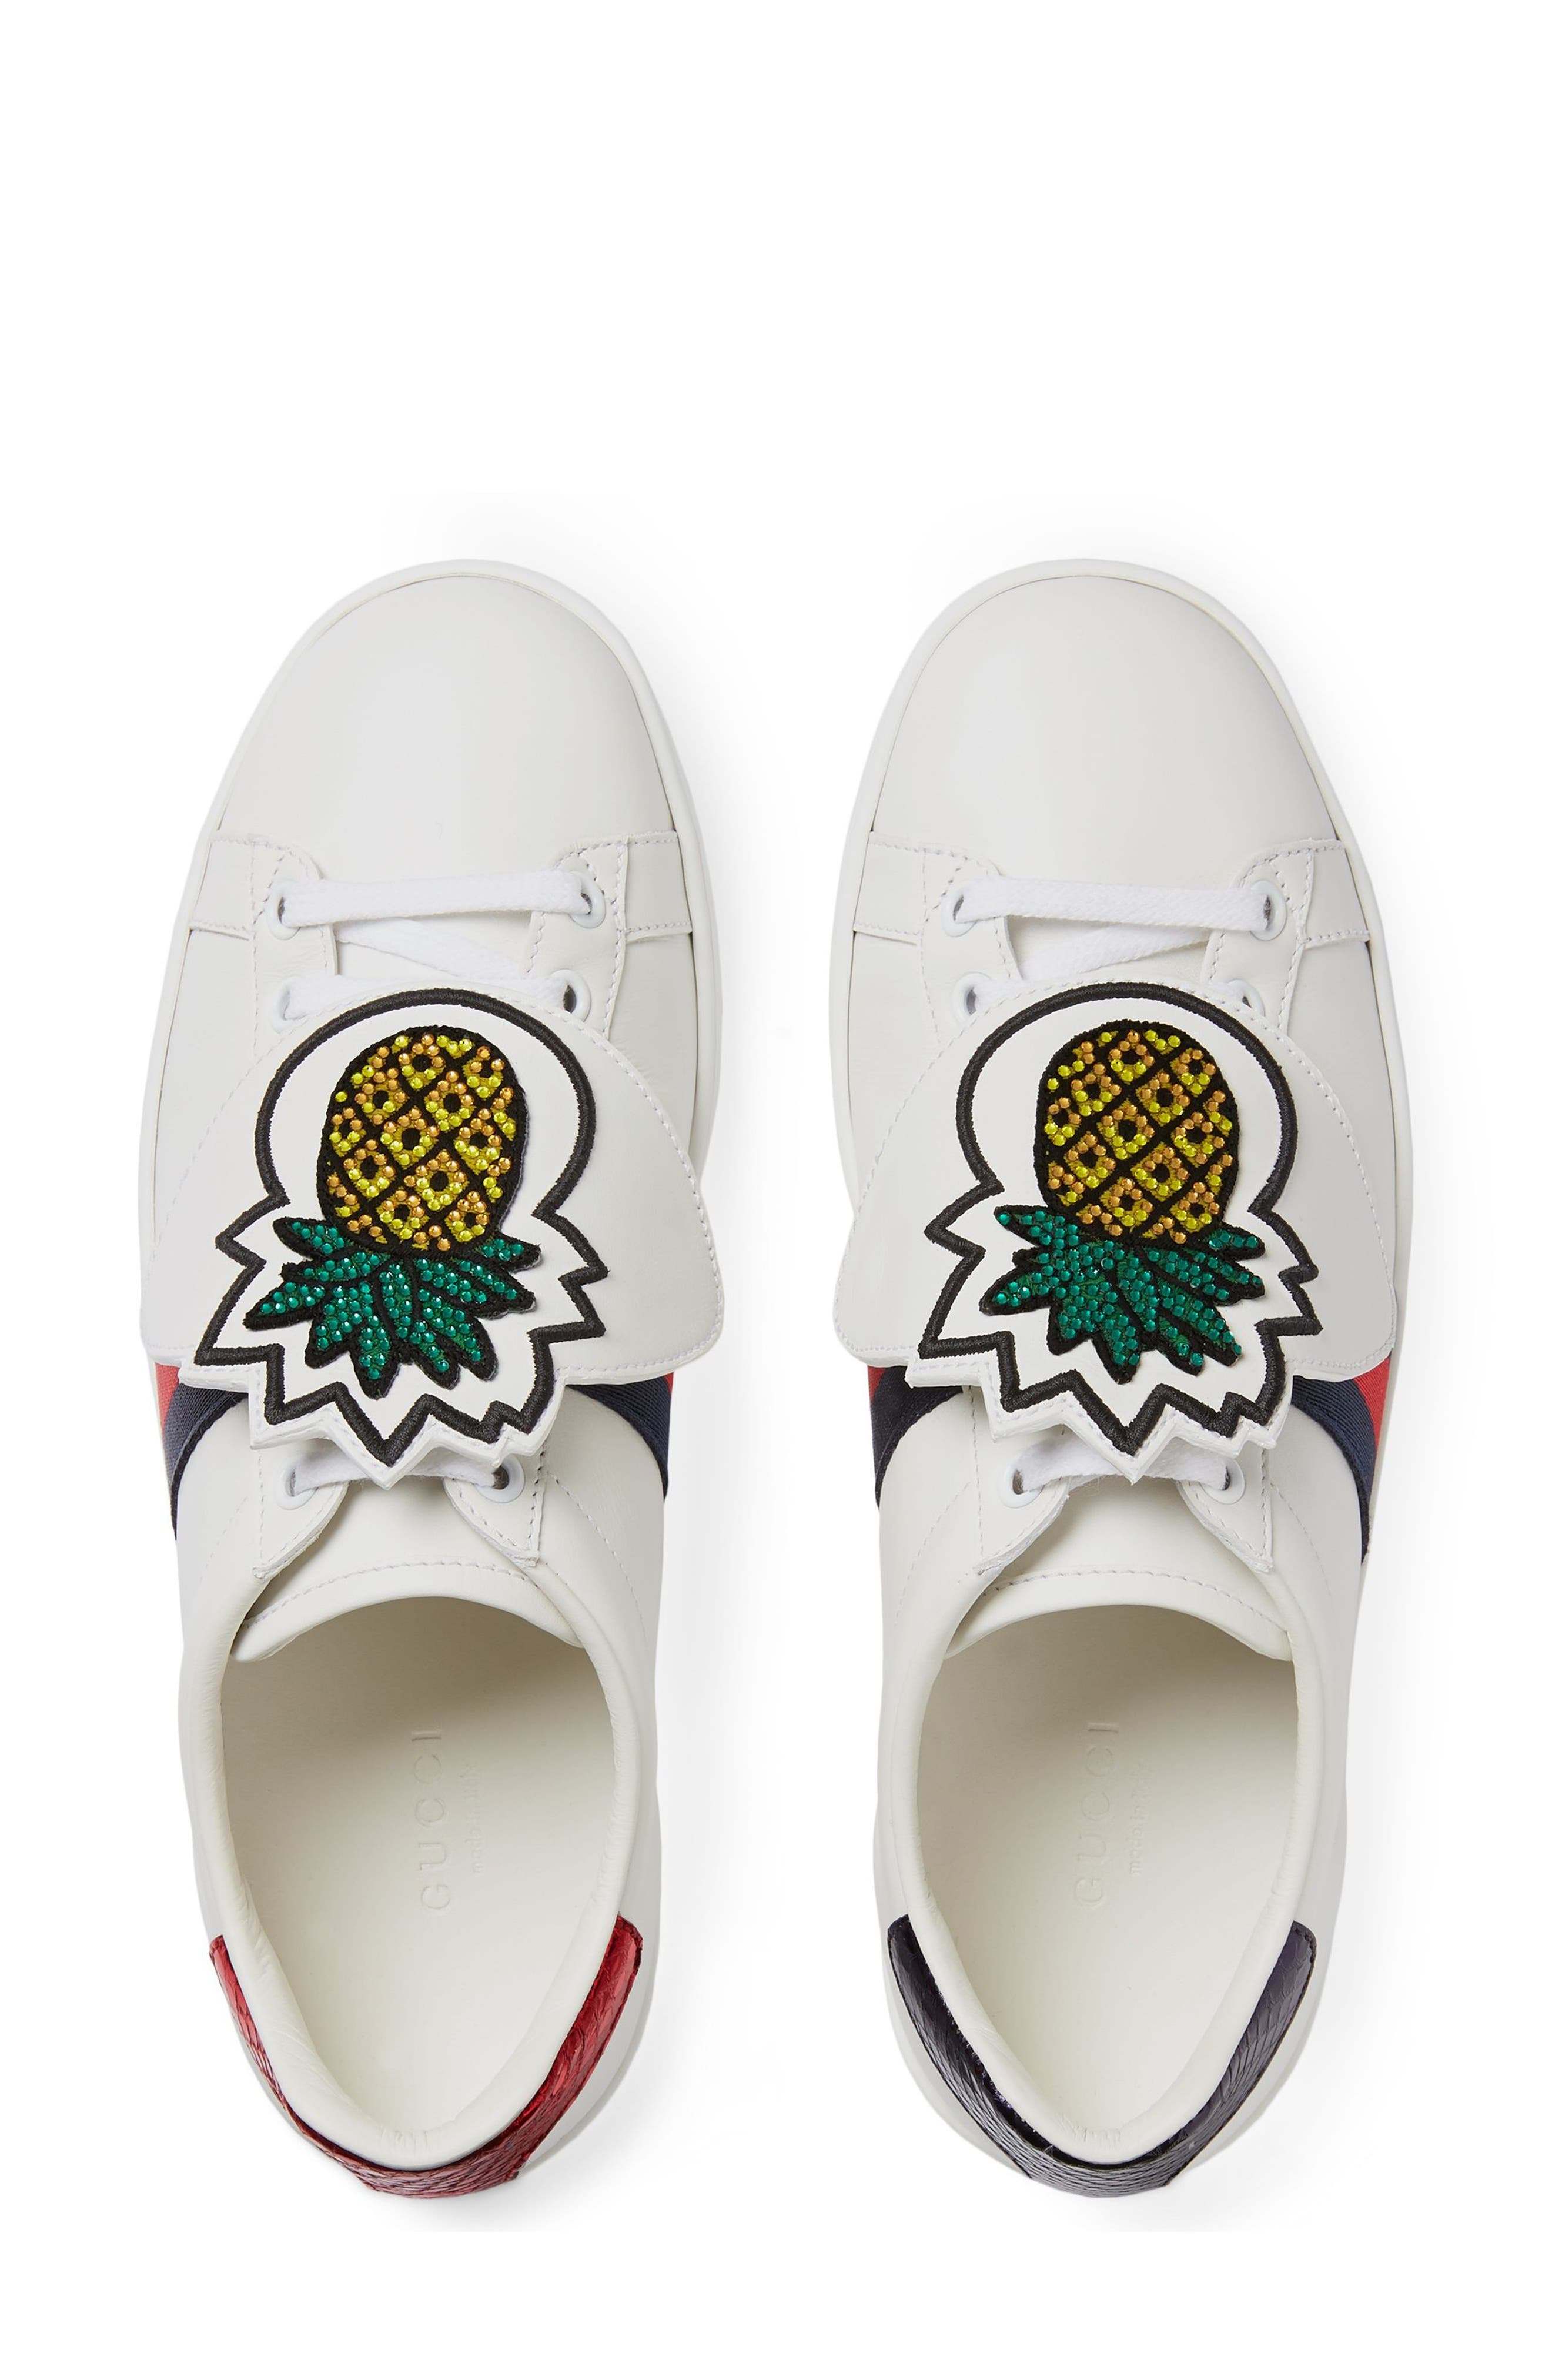 Alternate Image 2  - Gucci New Ace Pineapple Embroidered Patch Low Top Sneaker (Women)